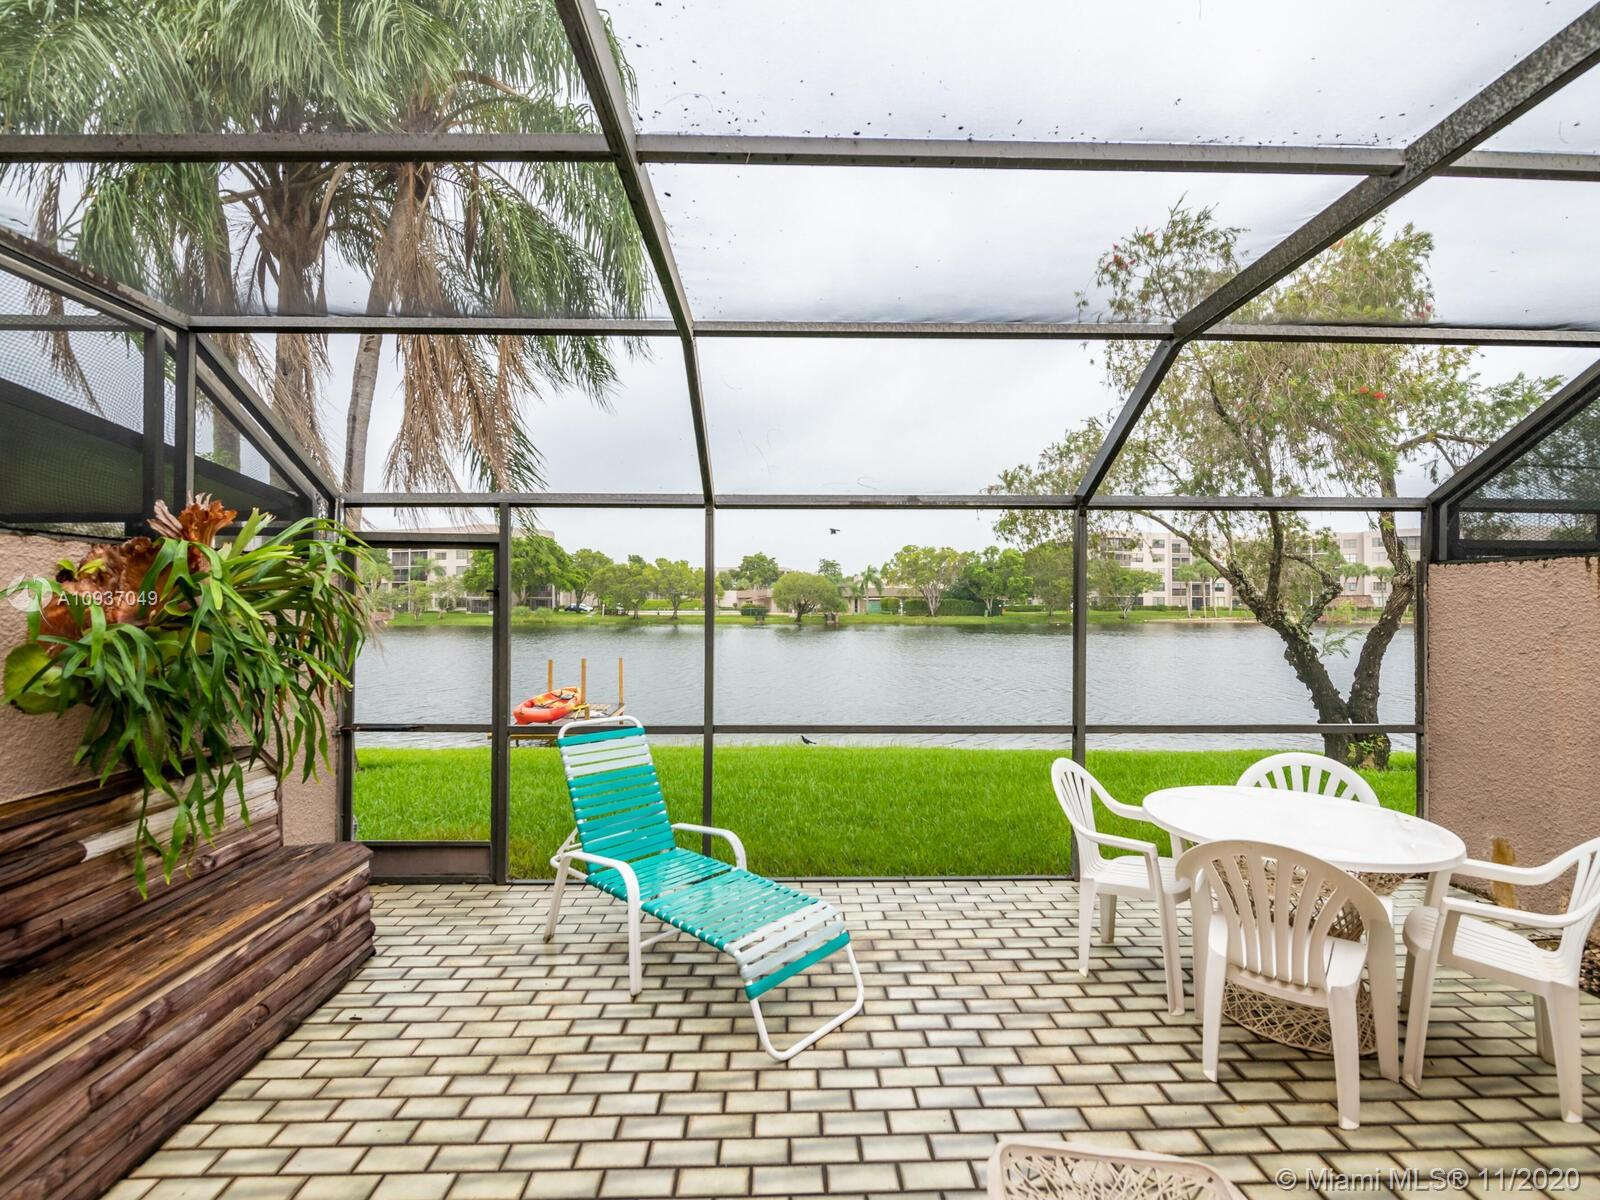 Live in Villas Lakes in the heart of Pembroke Lakes. Spectacular Lake view, 3 bedroom 3 bath townhouse with 1 full bedroom and bath on ground floor.  Bright open Living & dining areas with  beamed vaulted ceiling and tile throughout the first floor. Large screened patio with panoramic lake view to relax and enjoy nature. Low monthly HOA fee, 24 hr security patrol,close to Pembroke Lakes Mall,hospital & shopping plazas. Amenities include Cable TV,Olympic size pool,tennis courts,basketball and racquetball courts, 2 assigned parking spaces and plenty of guest parking.